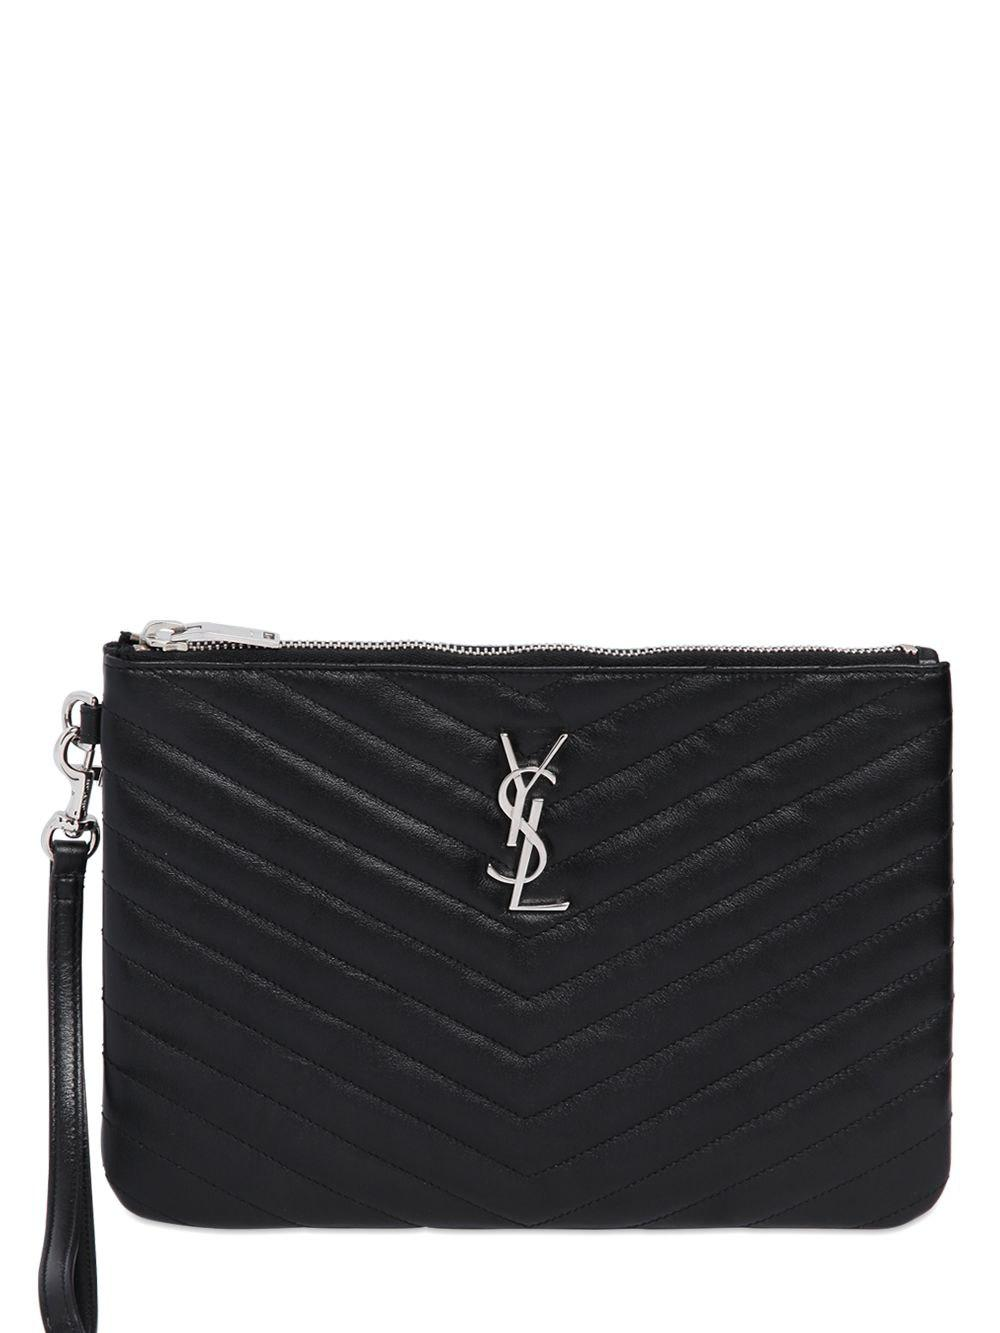 0f6d99c68b Lyst - Saint Laurent Quilted Monogram Leather Pouch in Black